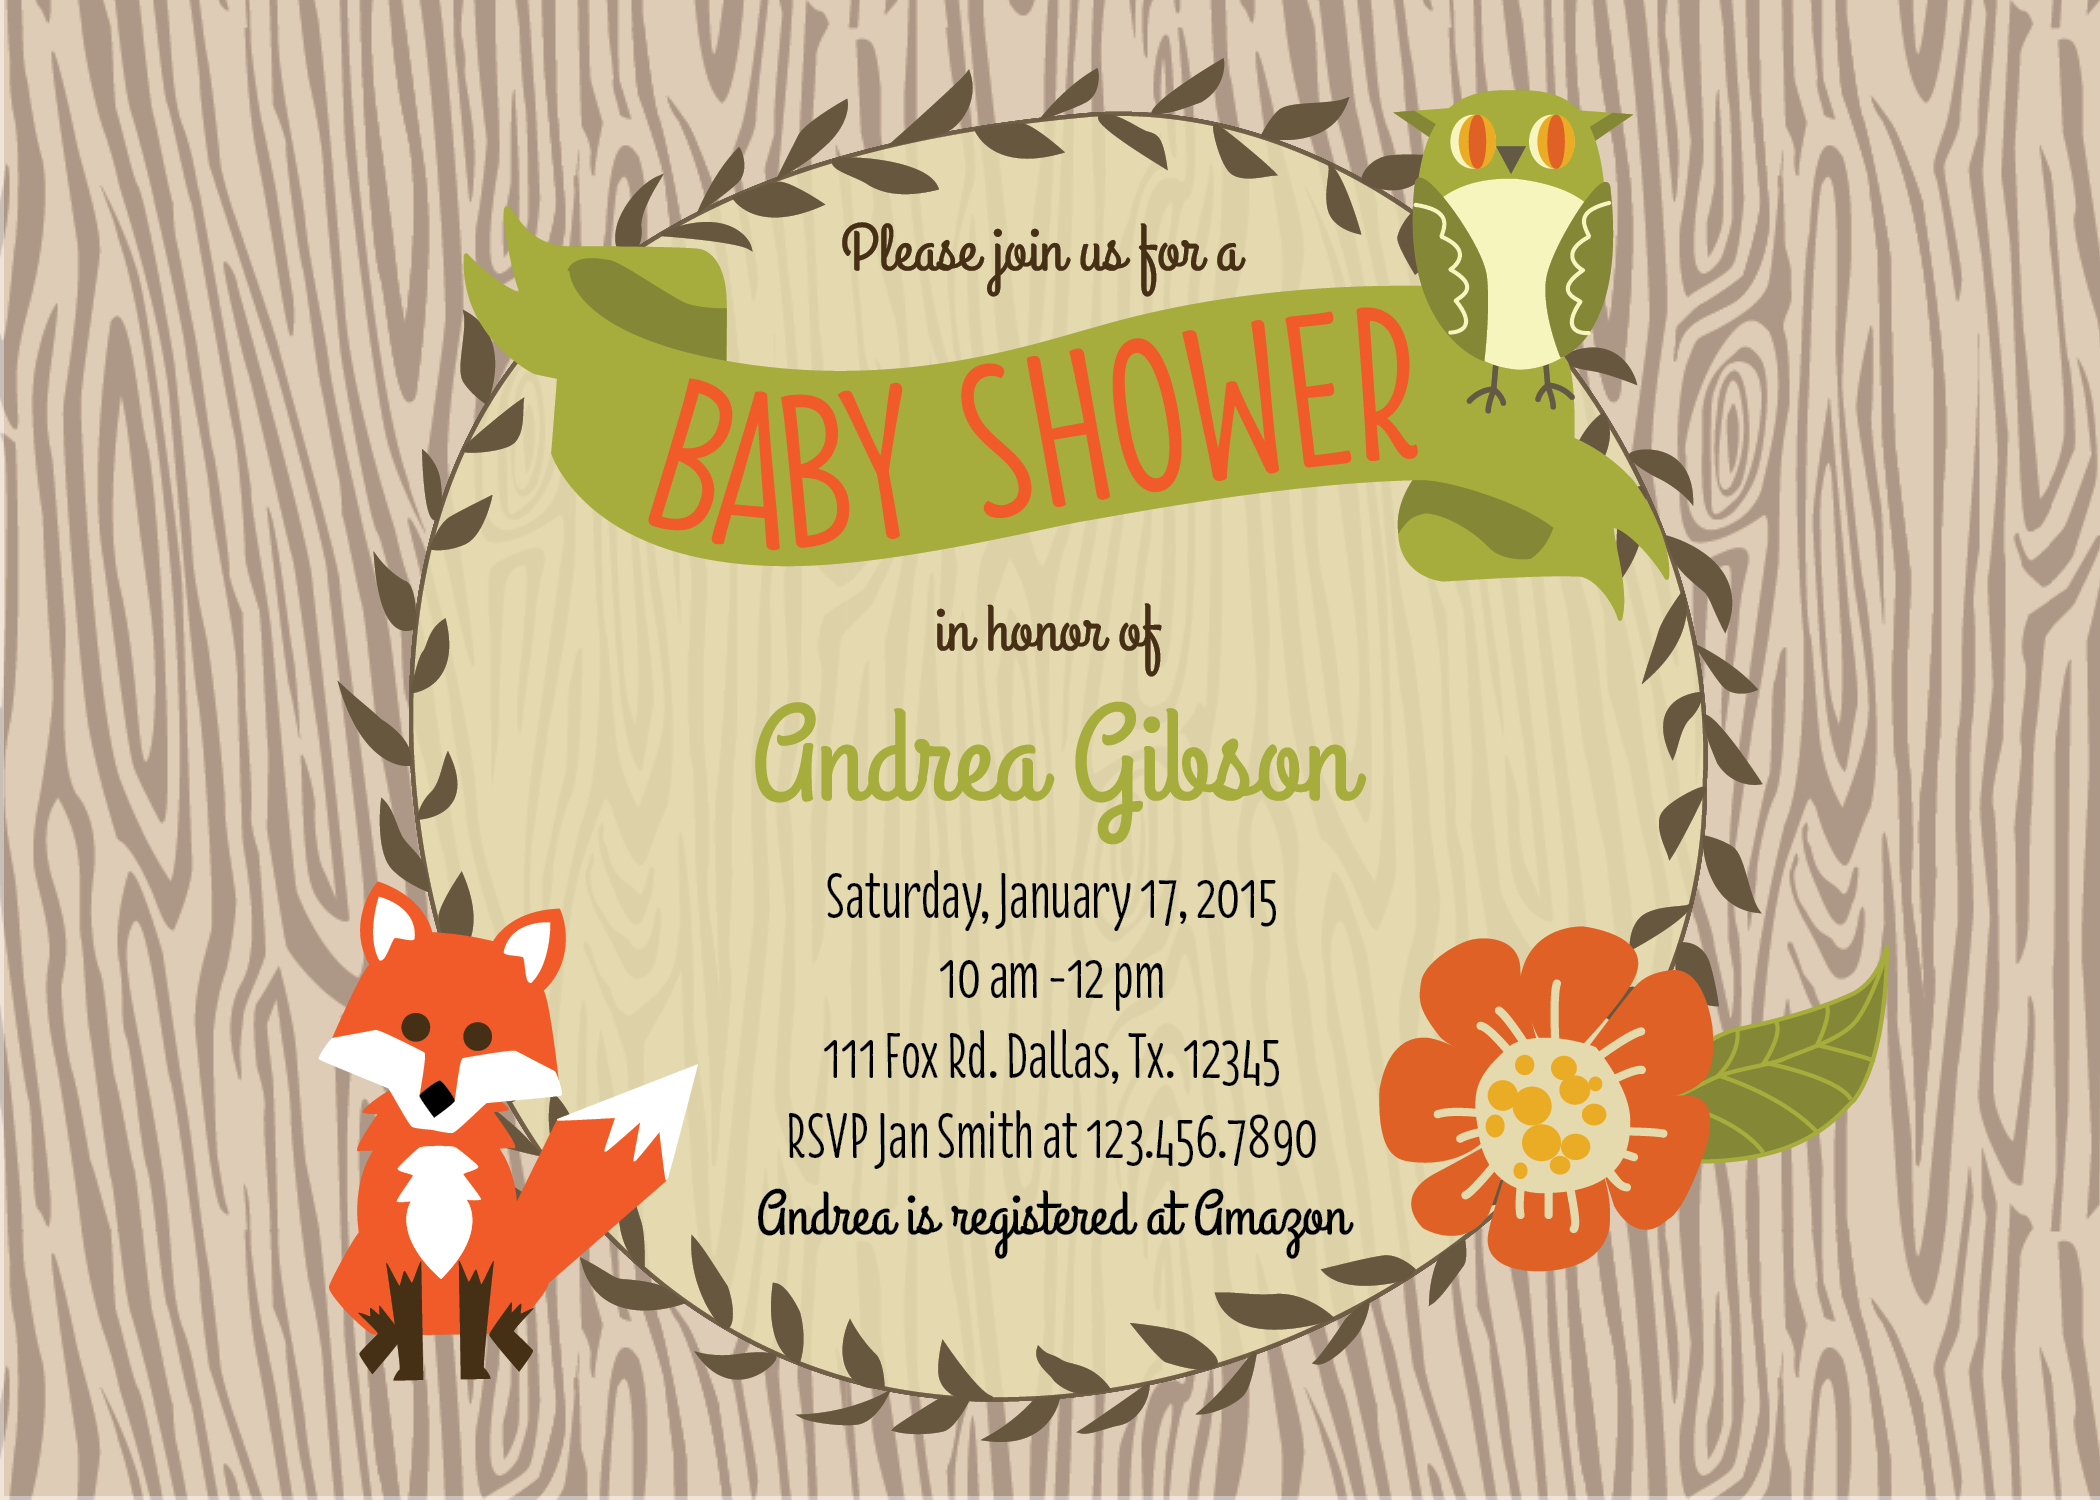 Woodsy Baby Shower Invite.jpg